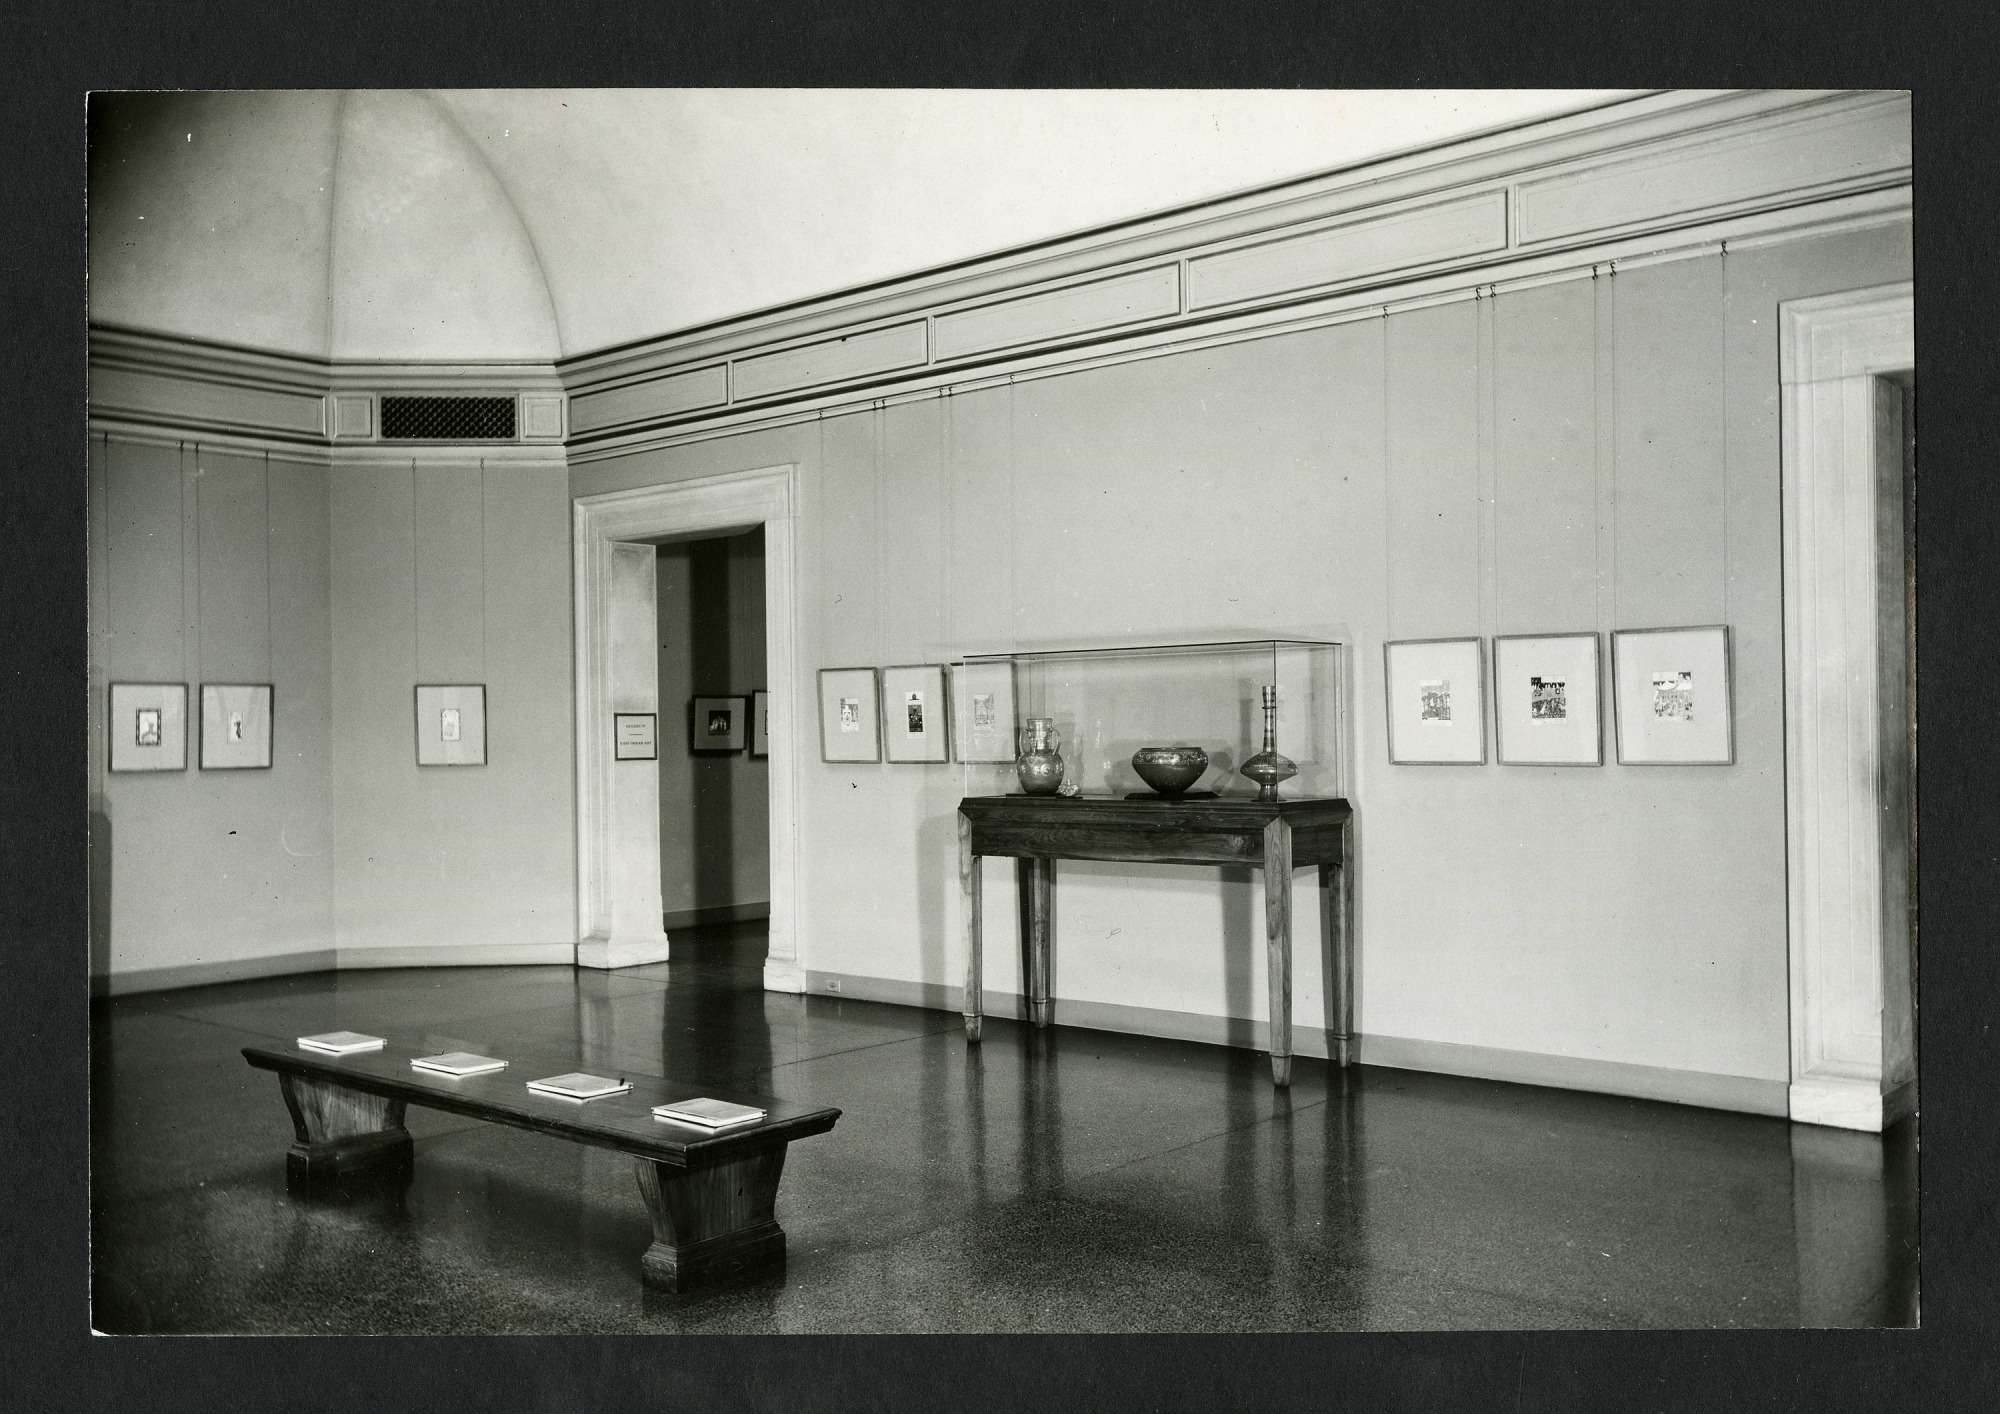 Preview of North Wall of Gallery II in the Freer Gallery of Art